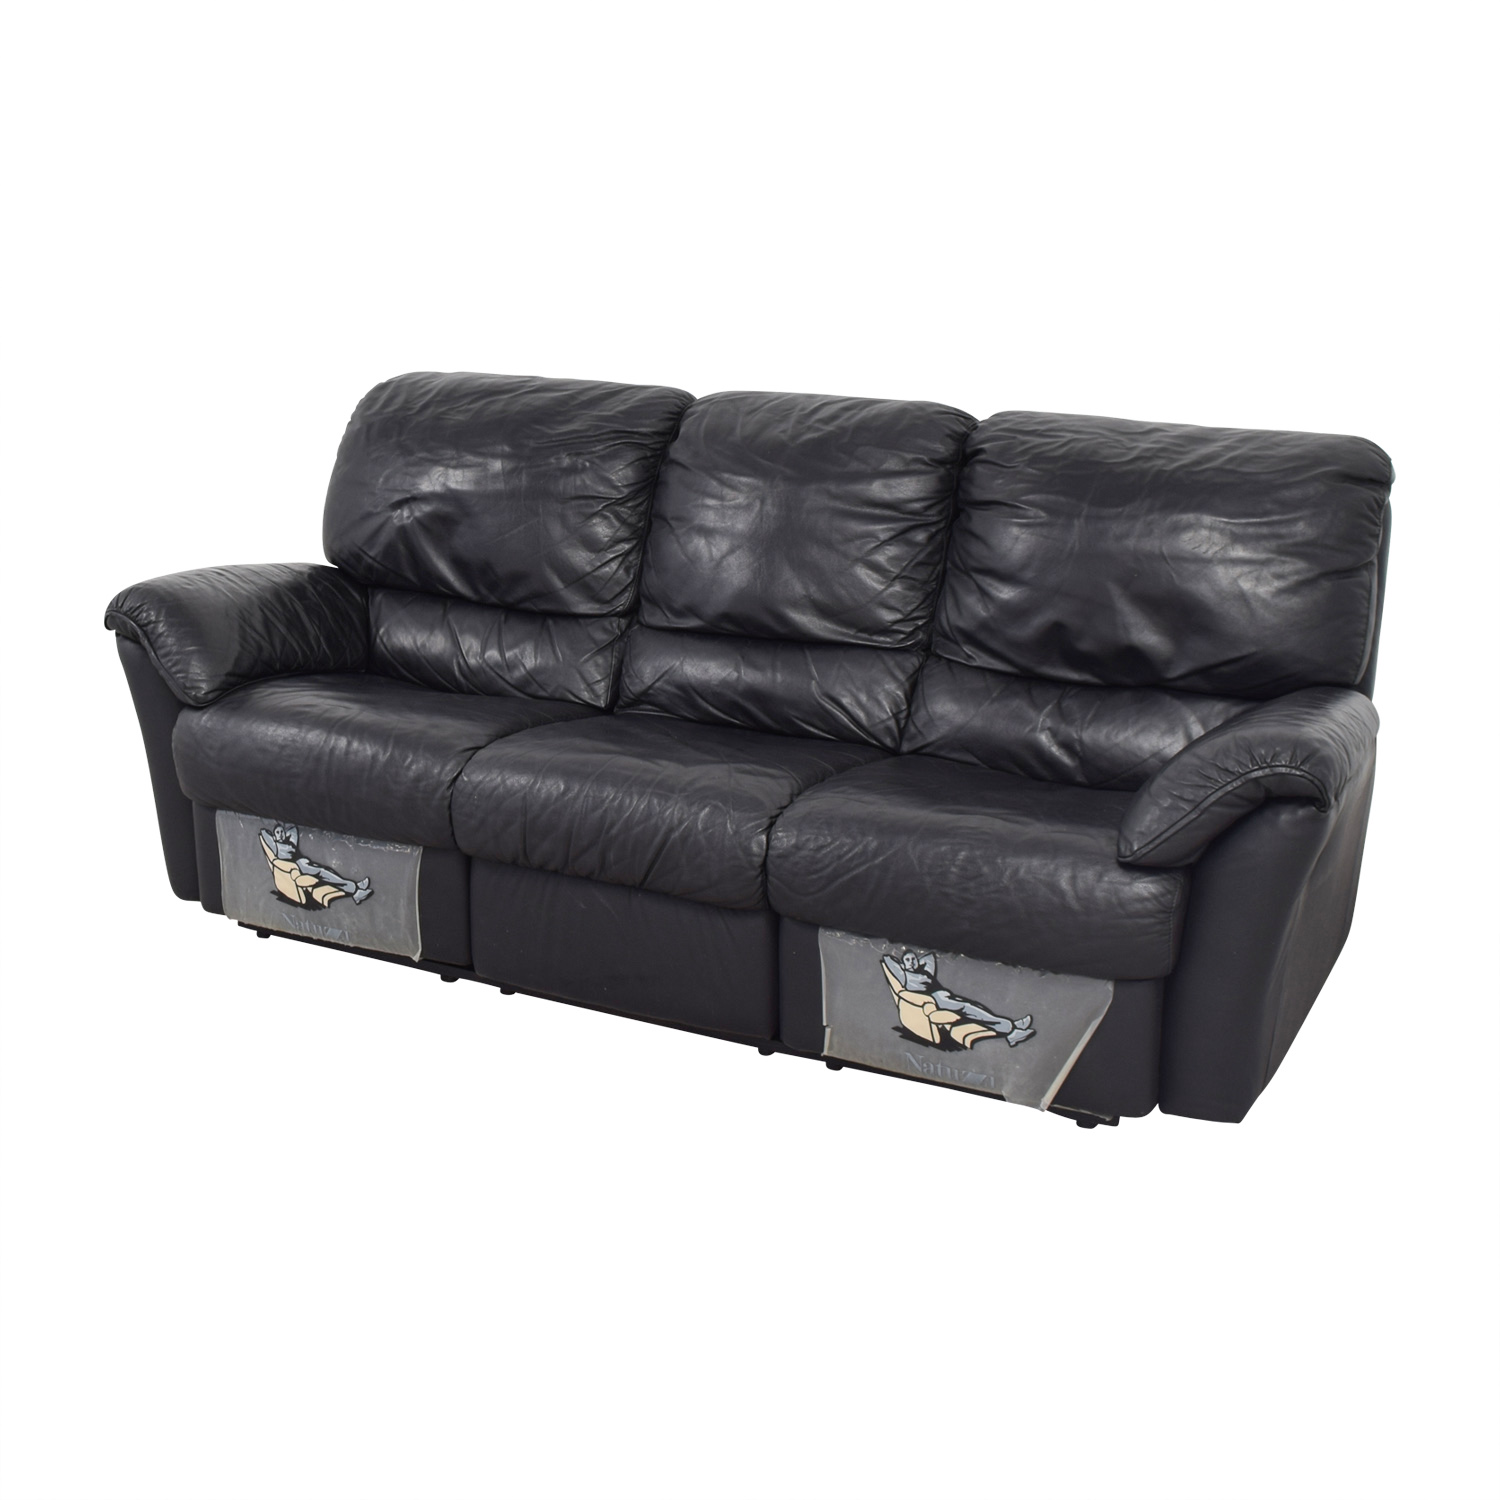 Stressless Sofa Preise Recliner Sofa Sale Best Interior Furniture